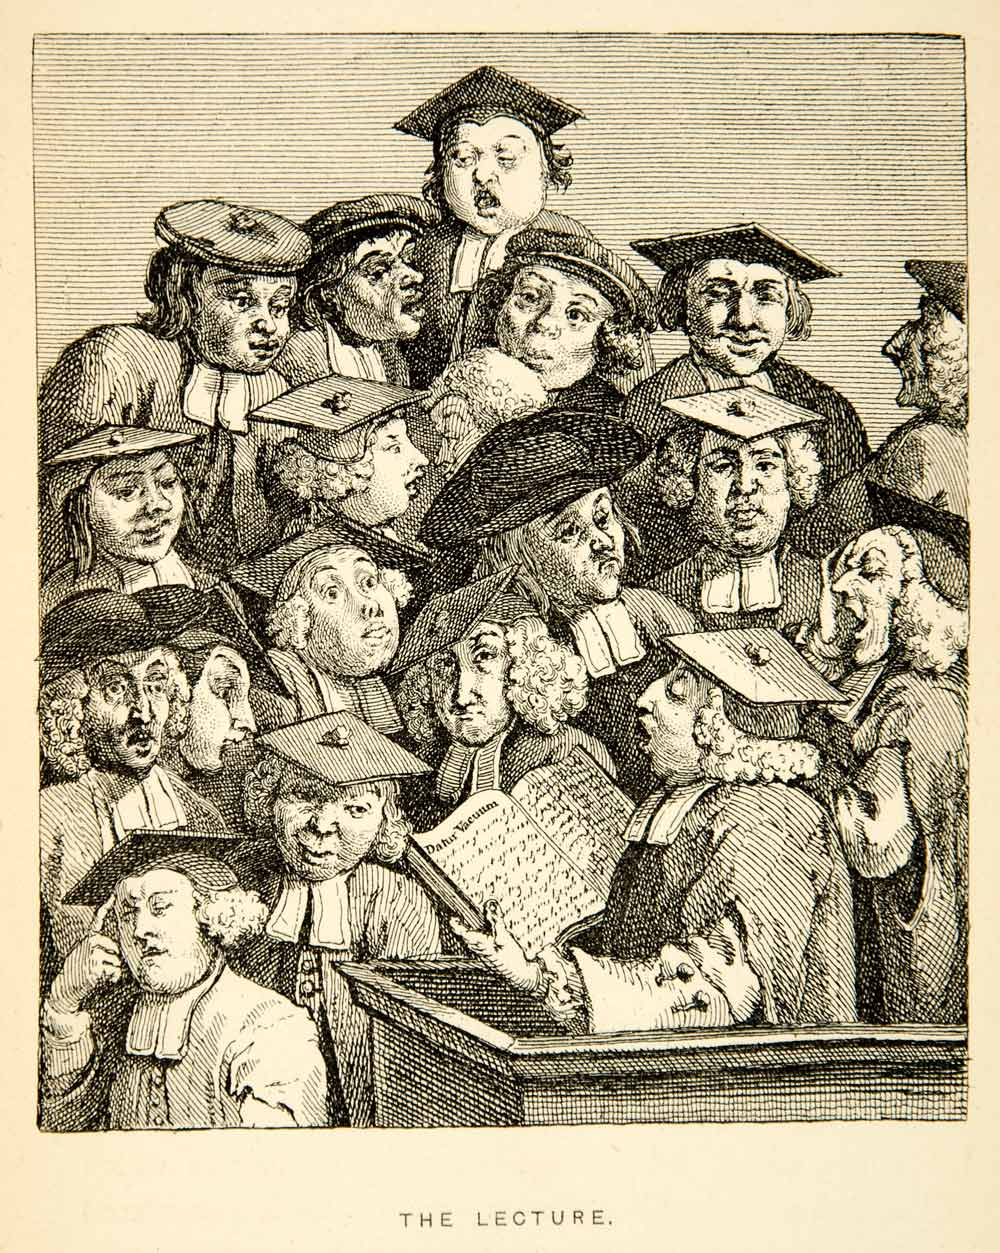 1883 Photolithograph William Hogarth Art Scholars Lecture Portrait Baroque XACA2